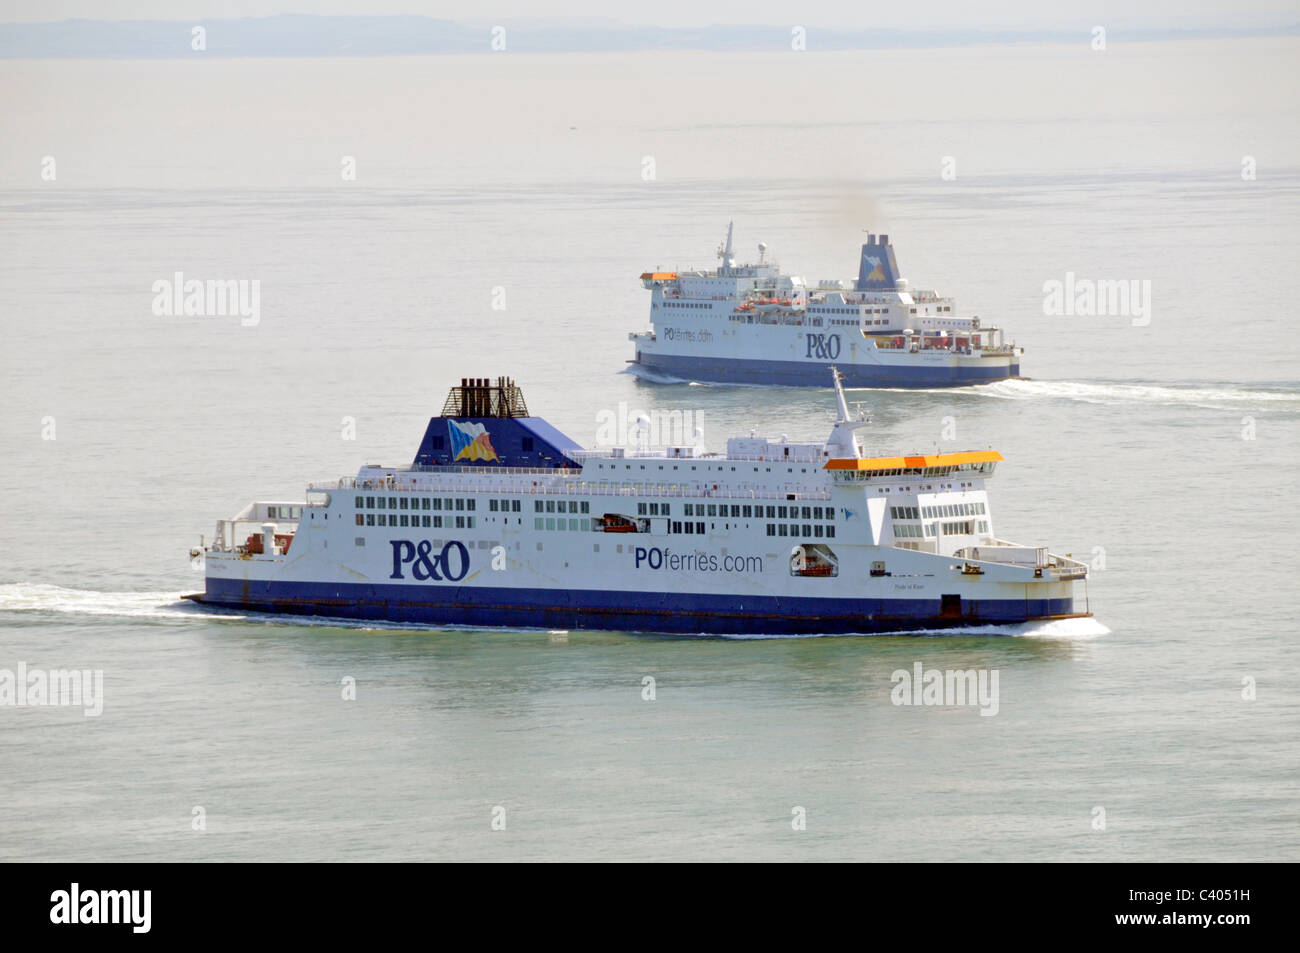 P&O Ferries in the Straits of Dover with French coastline distant - Stock Image